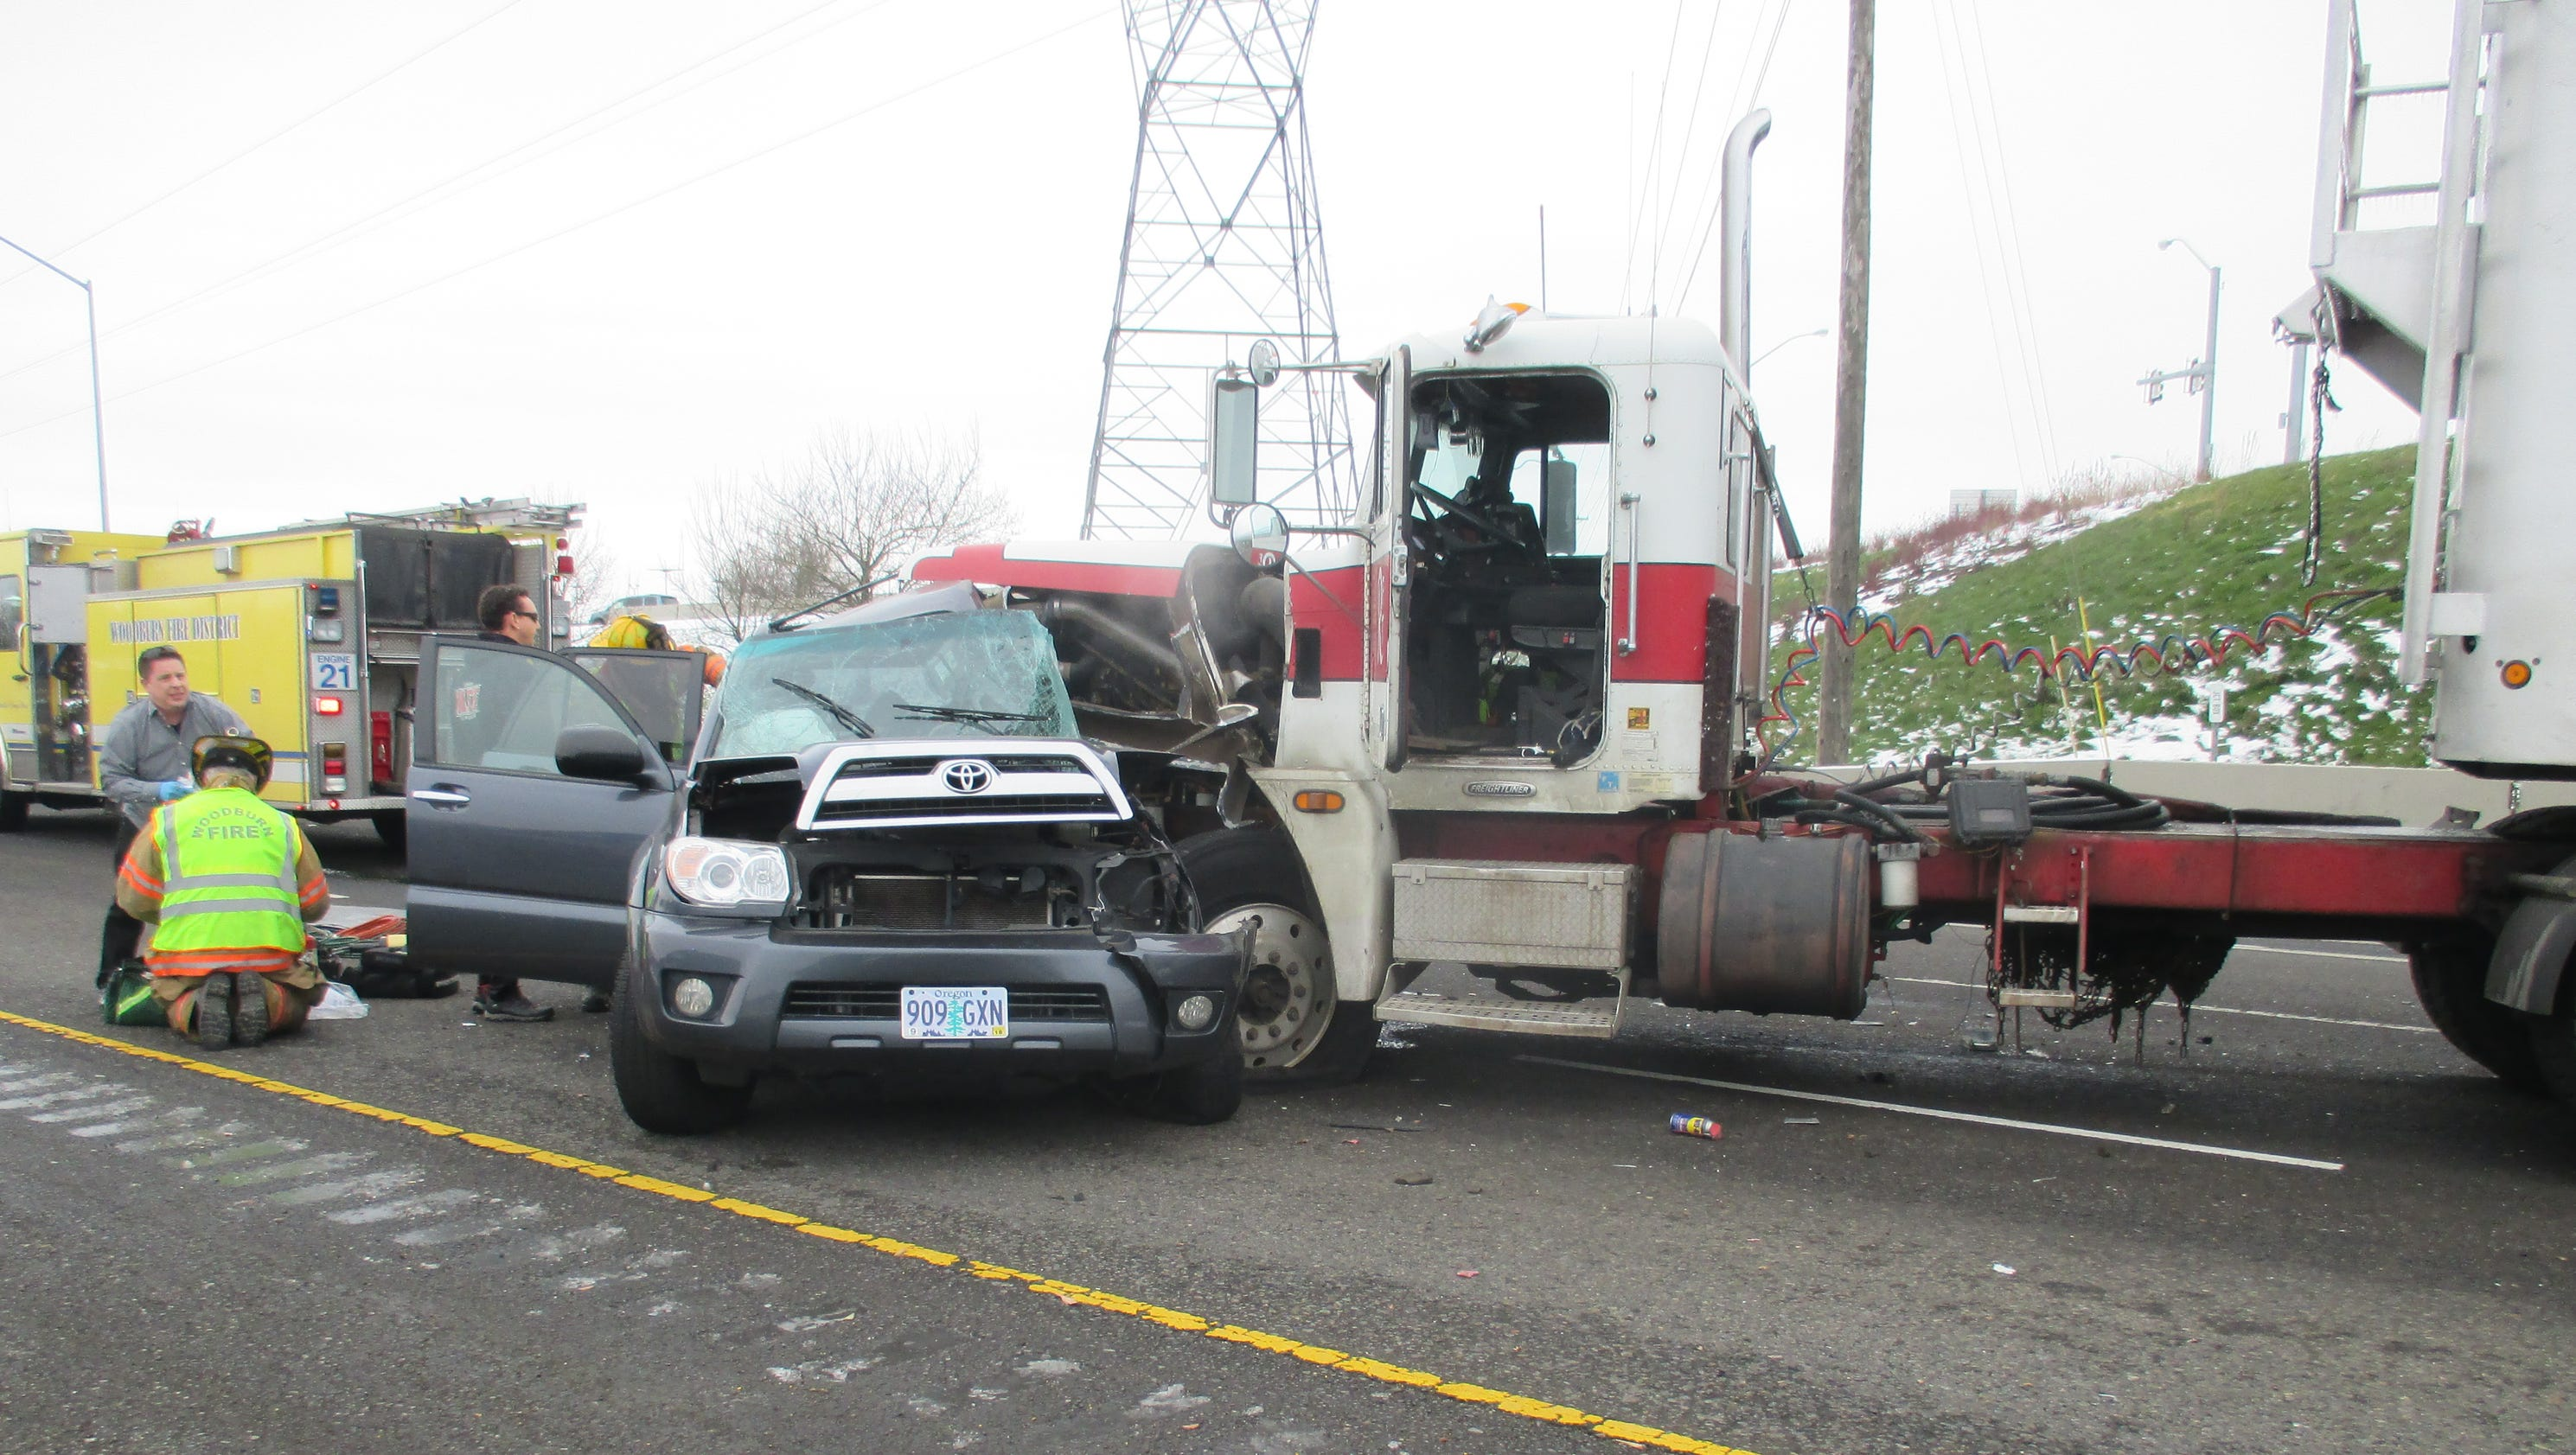 Deadly Car Crash In Leads To Traffic Delays - Imagez co